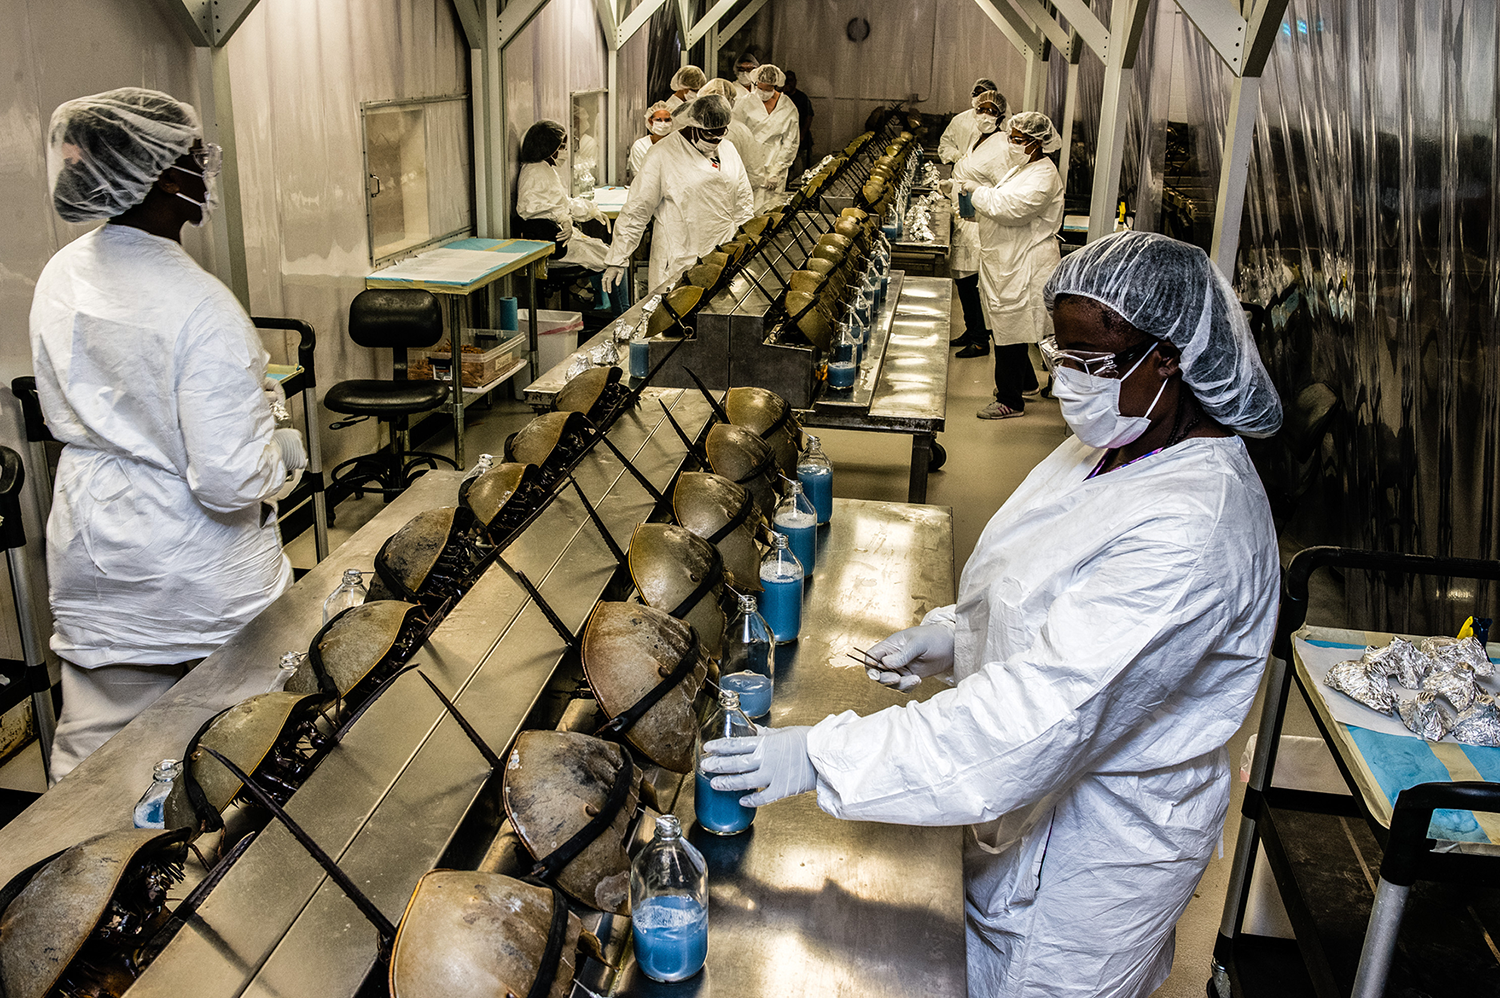 Charles River Laboratories in Charleston, South Carolina, is one facility that collects horseshoe crab blood, which appears blue upon air exposure. Photo by Timothy Fadek